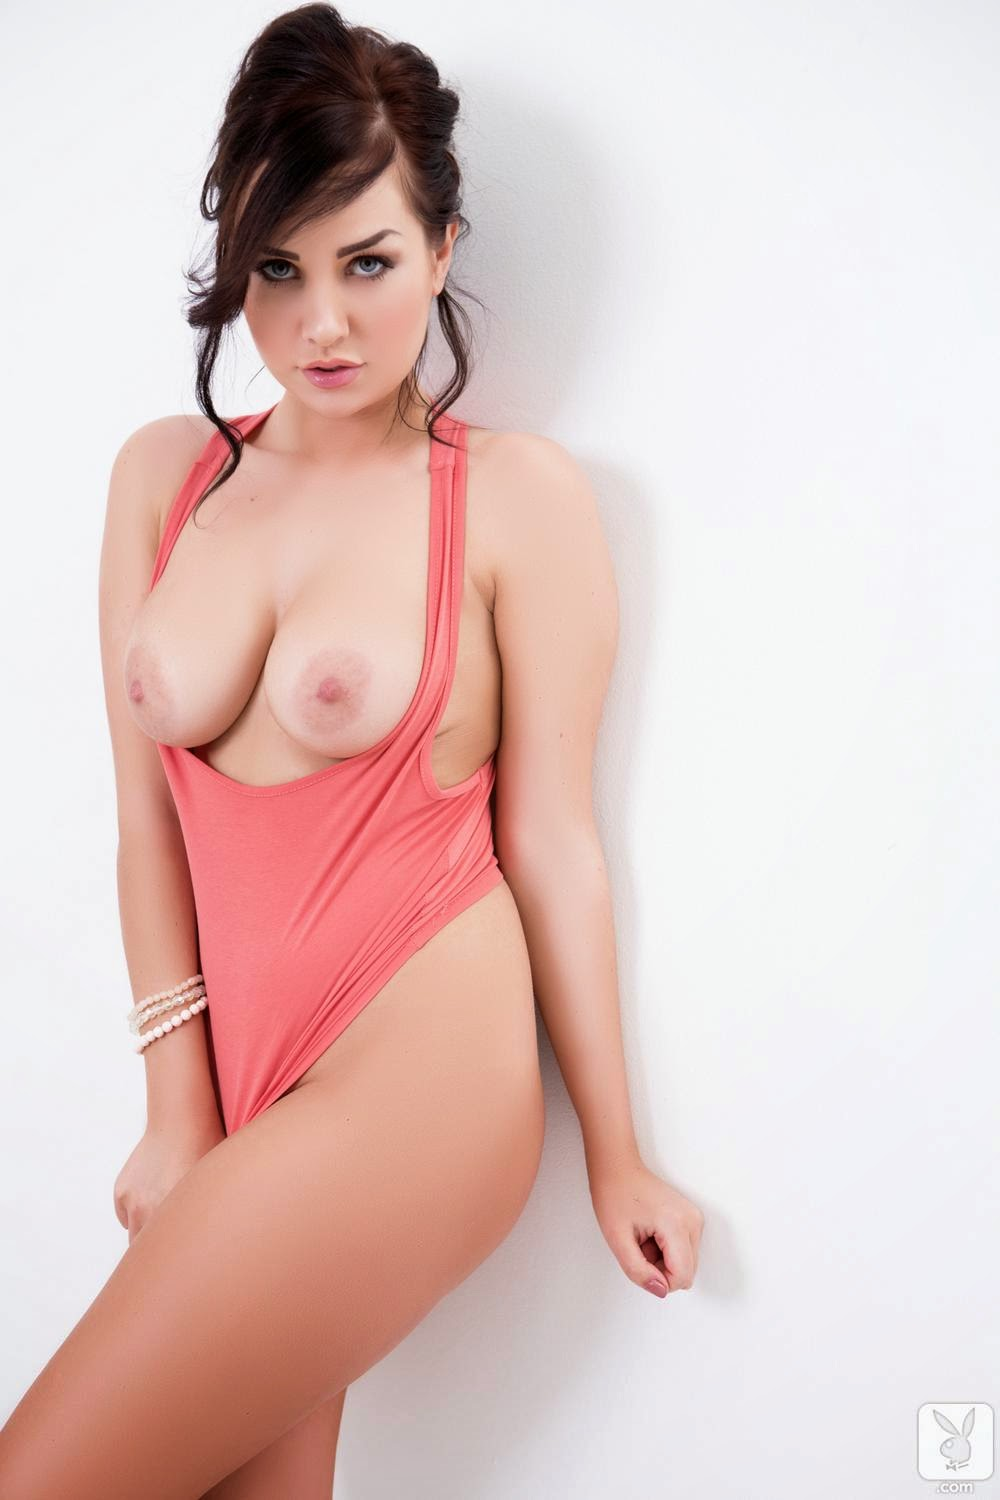 vedios if hot girls with nice pussys having sex